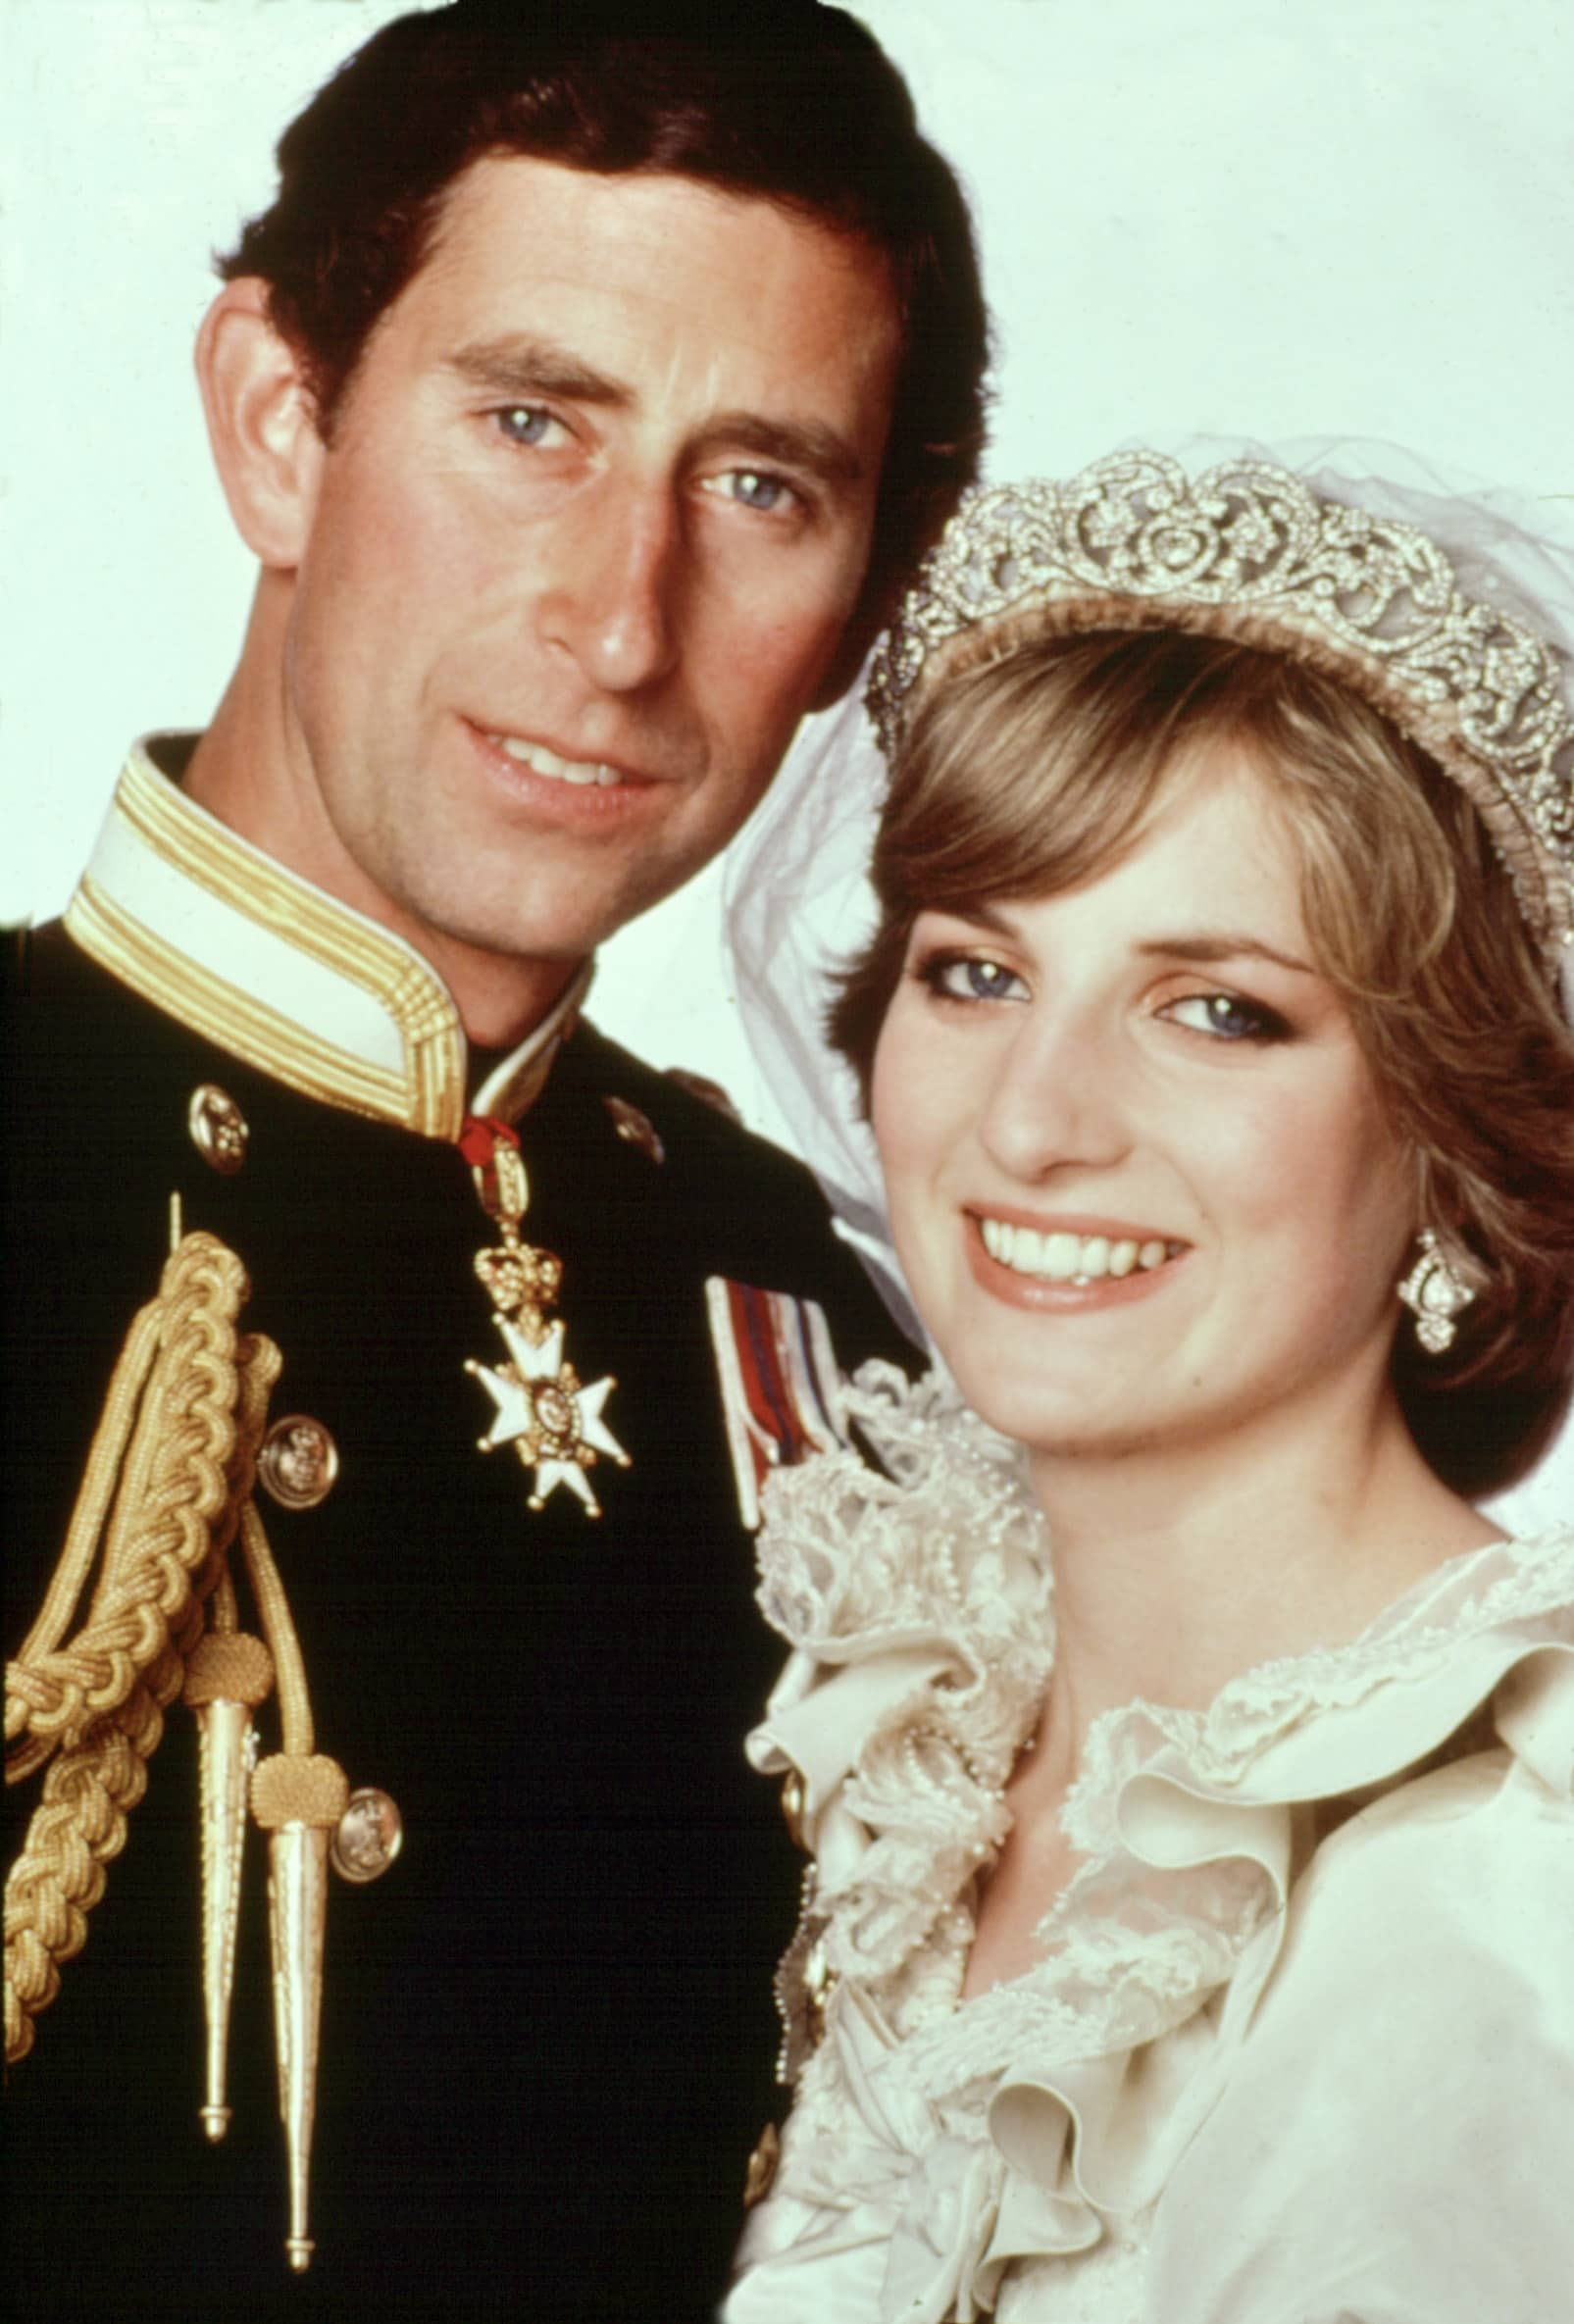 Wedding portrait of PRINCE CHARLES and LADY DIANA SPENCER, 1981